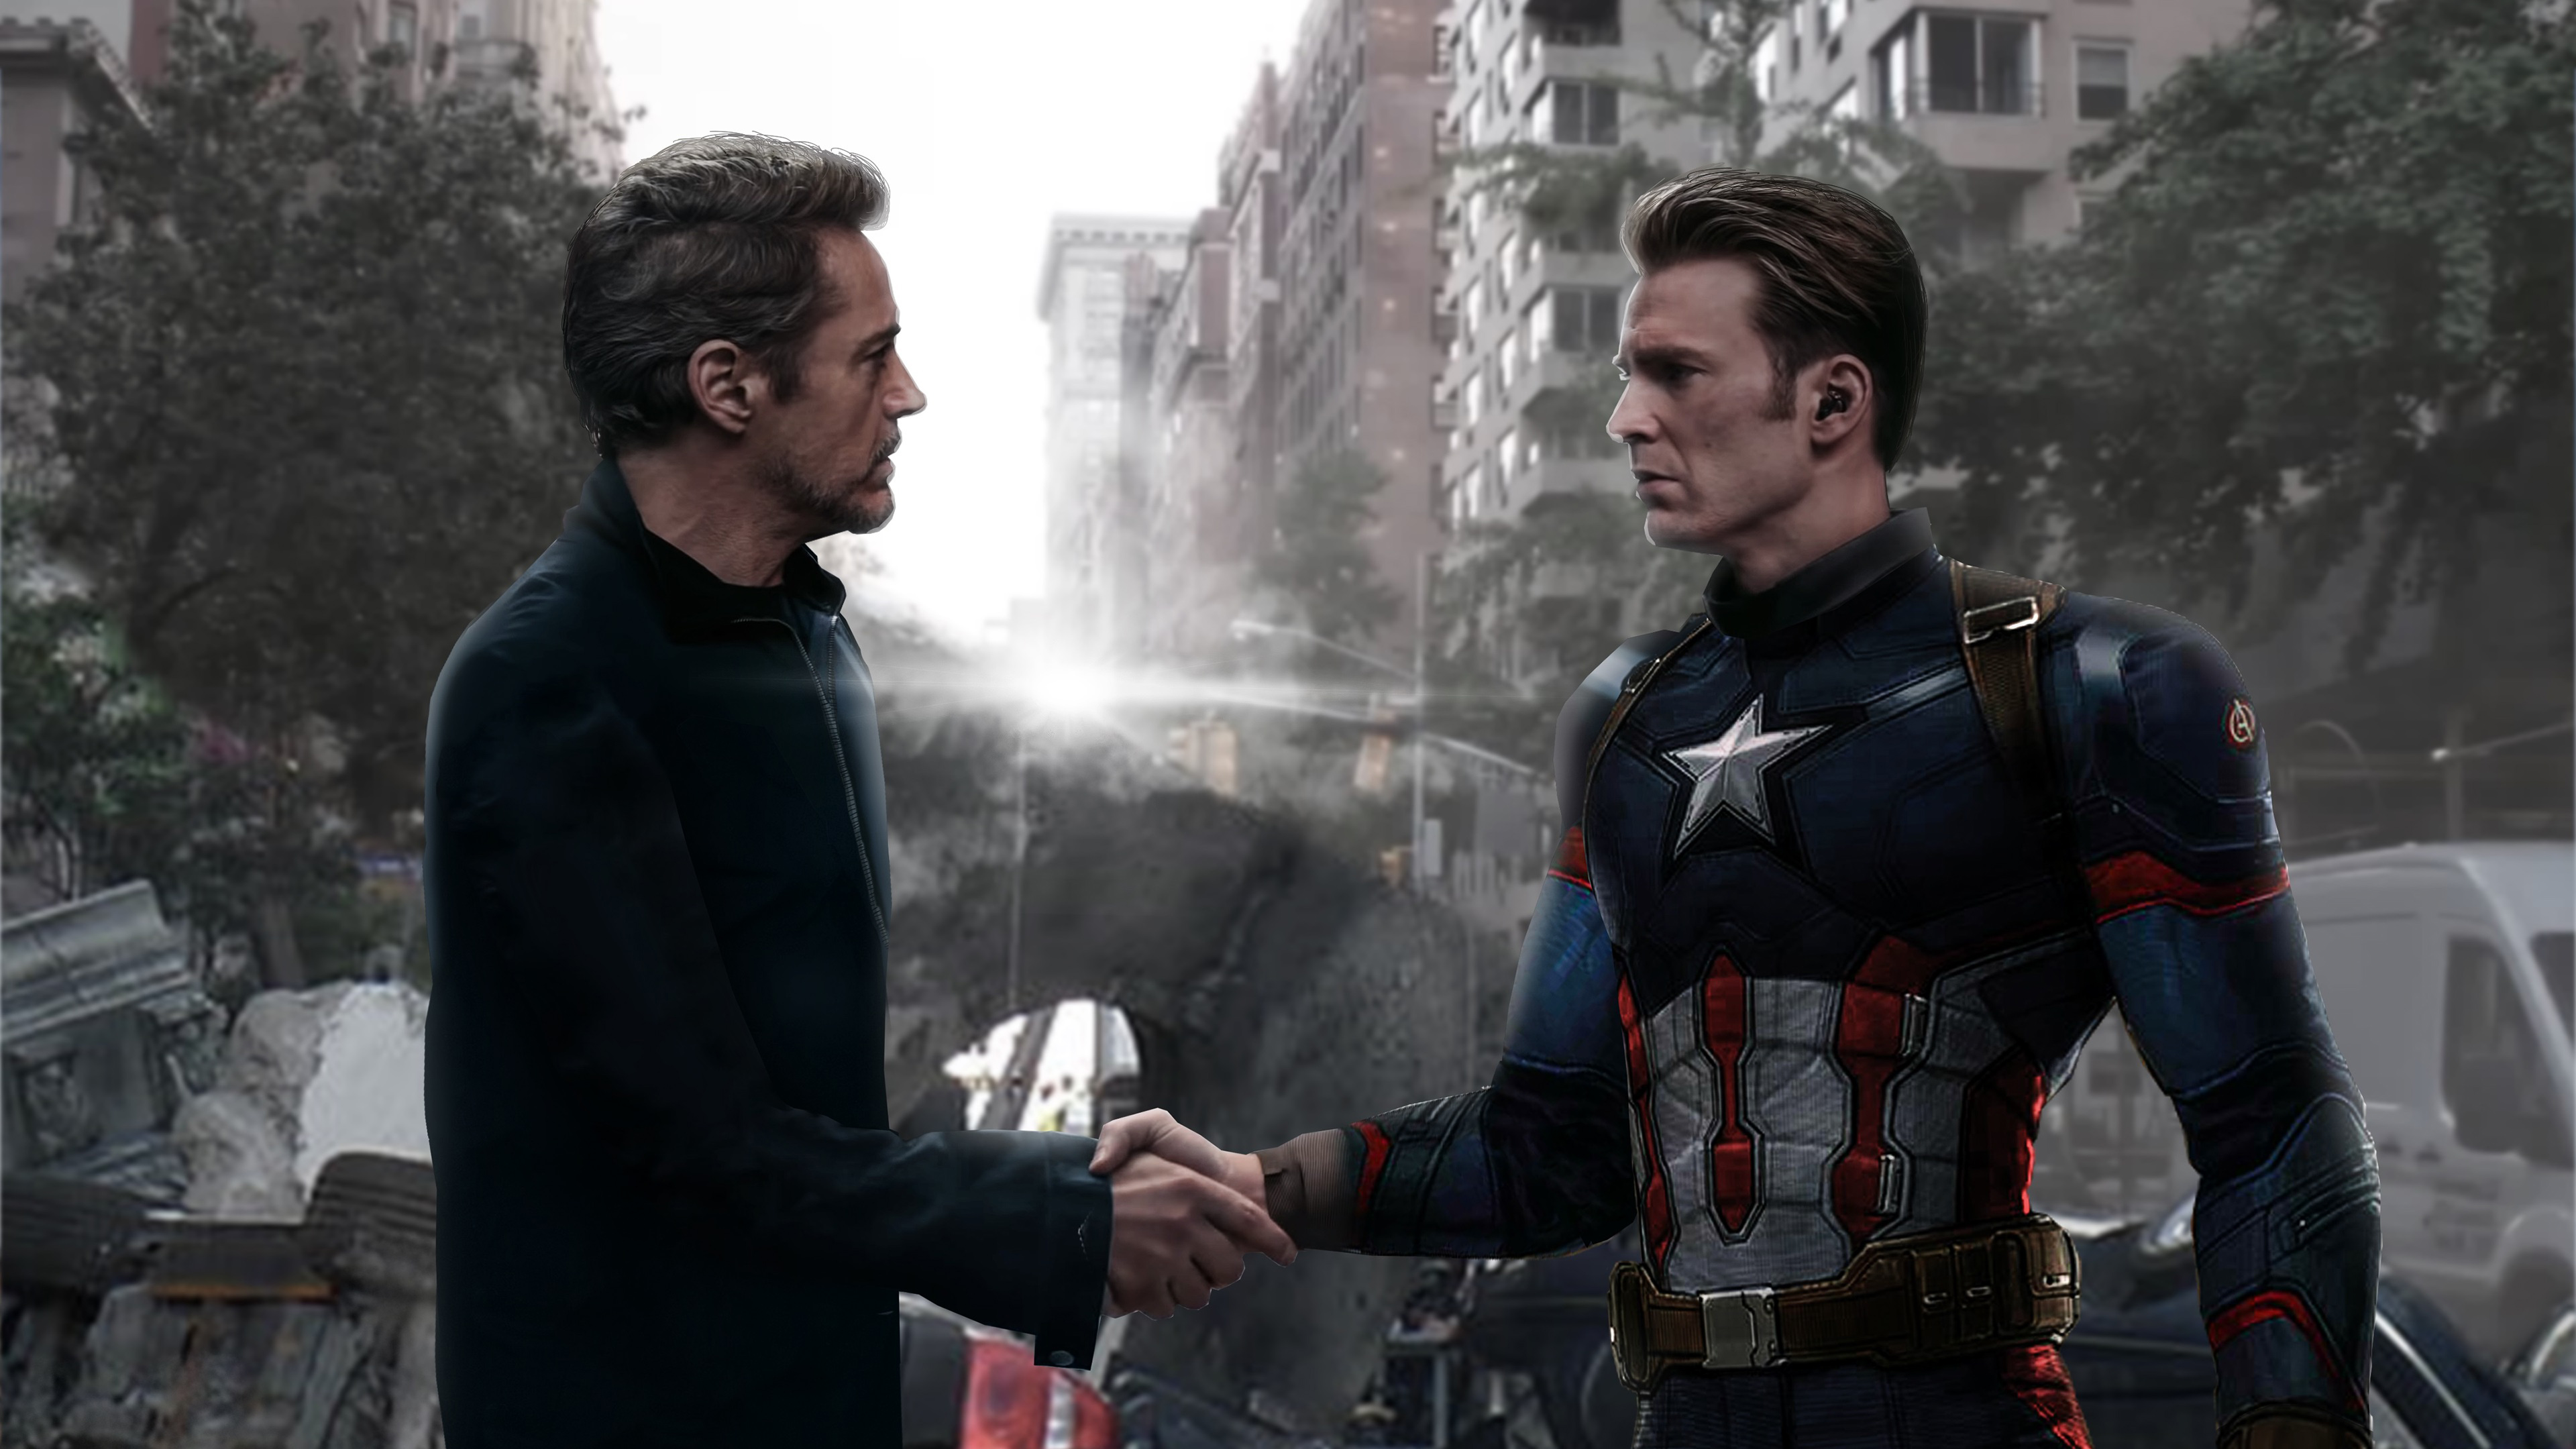 do you trust me i do 4k 1558219675 - Do You Trust Me I Do 4k - movies wallpapers, iron man wallpapers, hd-wallpapers, captain america wallpapers, behance wallpapers, avengers endgame wallpapers, artist wallpapers, 4k-wallpapers, 2019 movies wallpapers